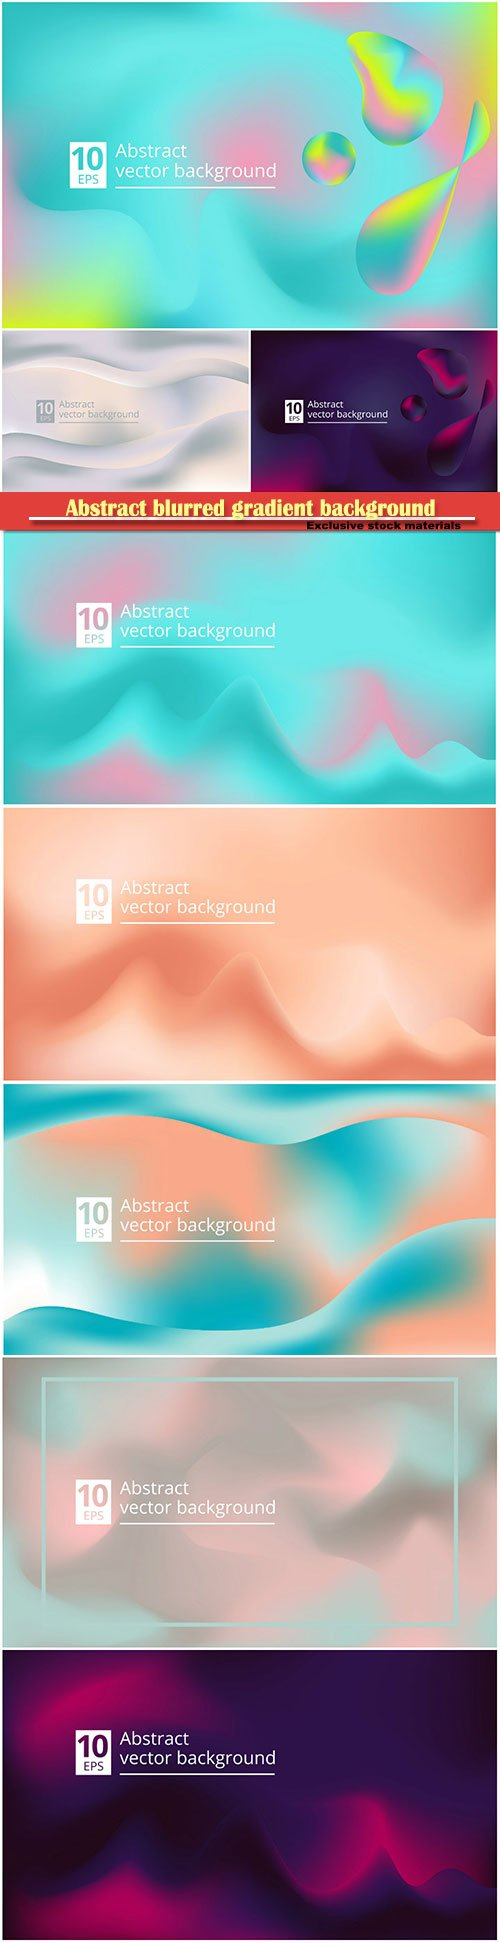 Abstract blurred gradient background with liquid shape